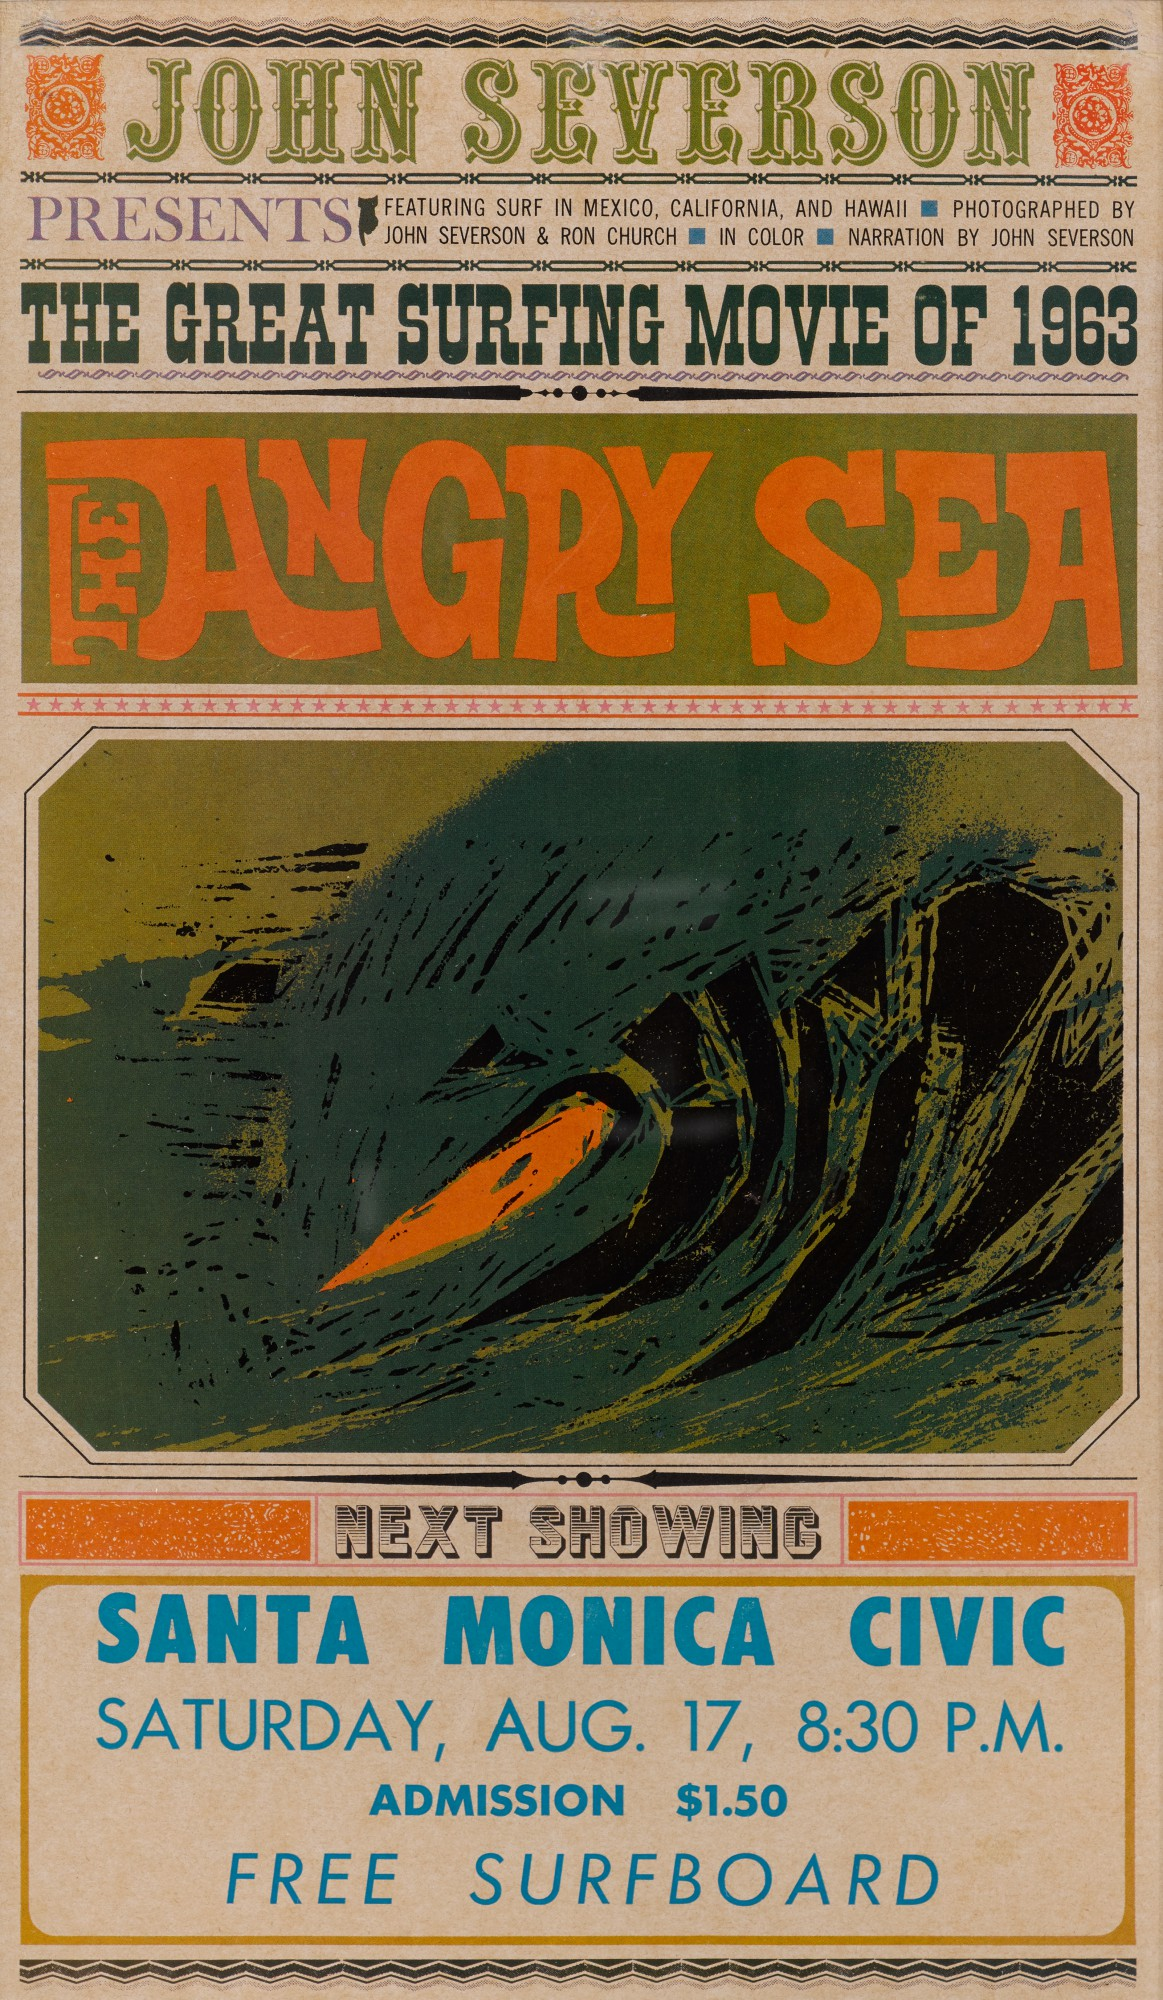 THE ANGRY SEA (1963) POSTER, US